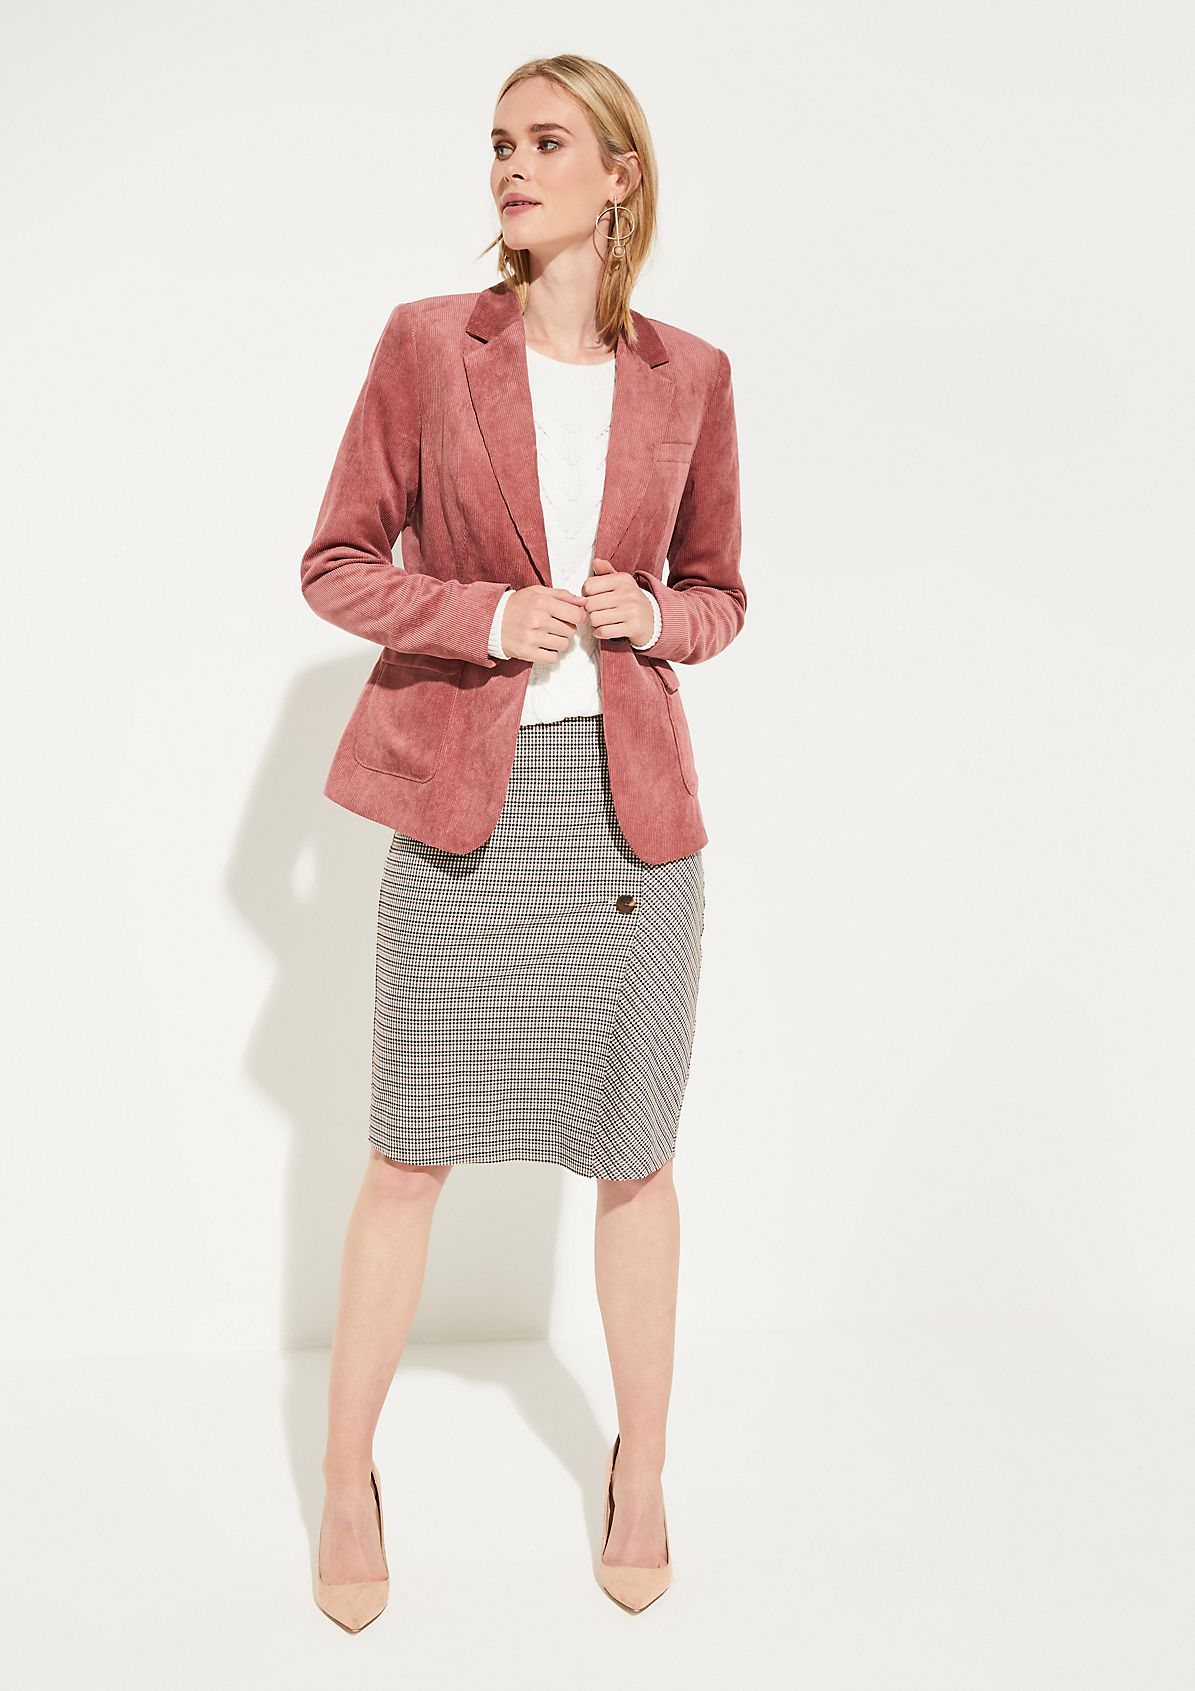 Needlecord blazer with exciting details from comma